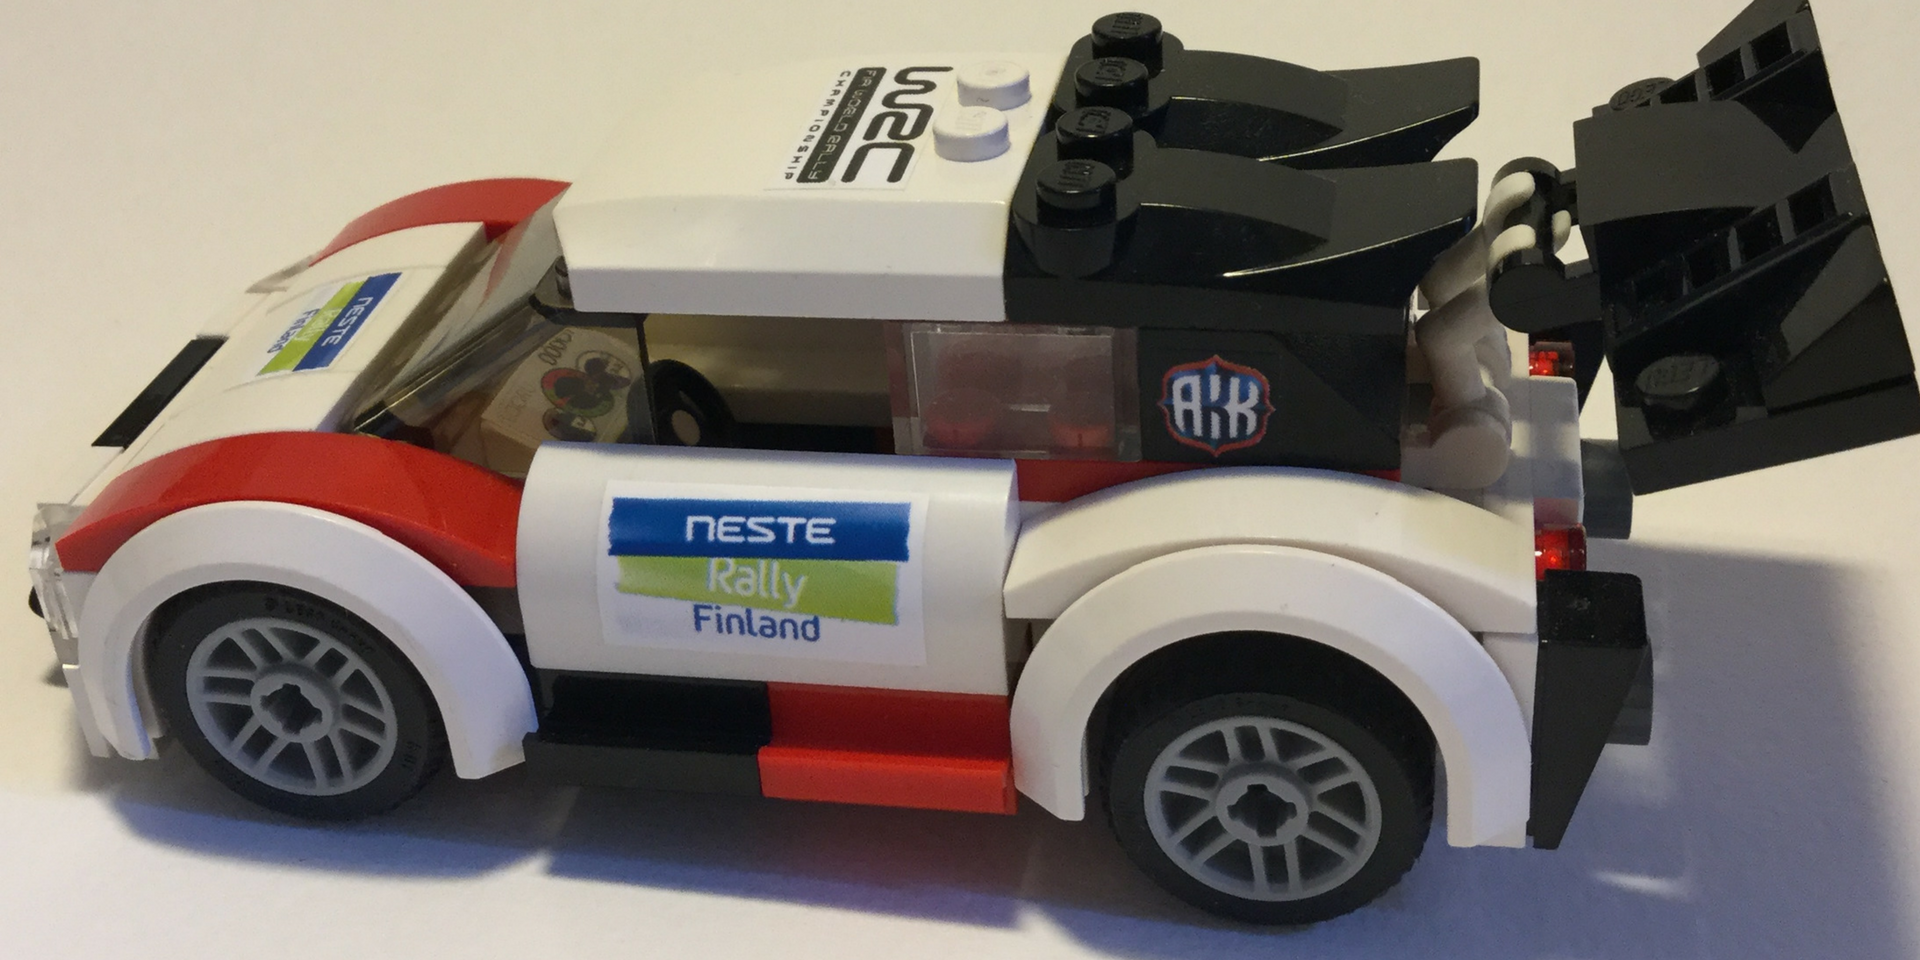 WRC RALLY CAR LEGO